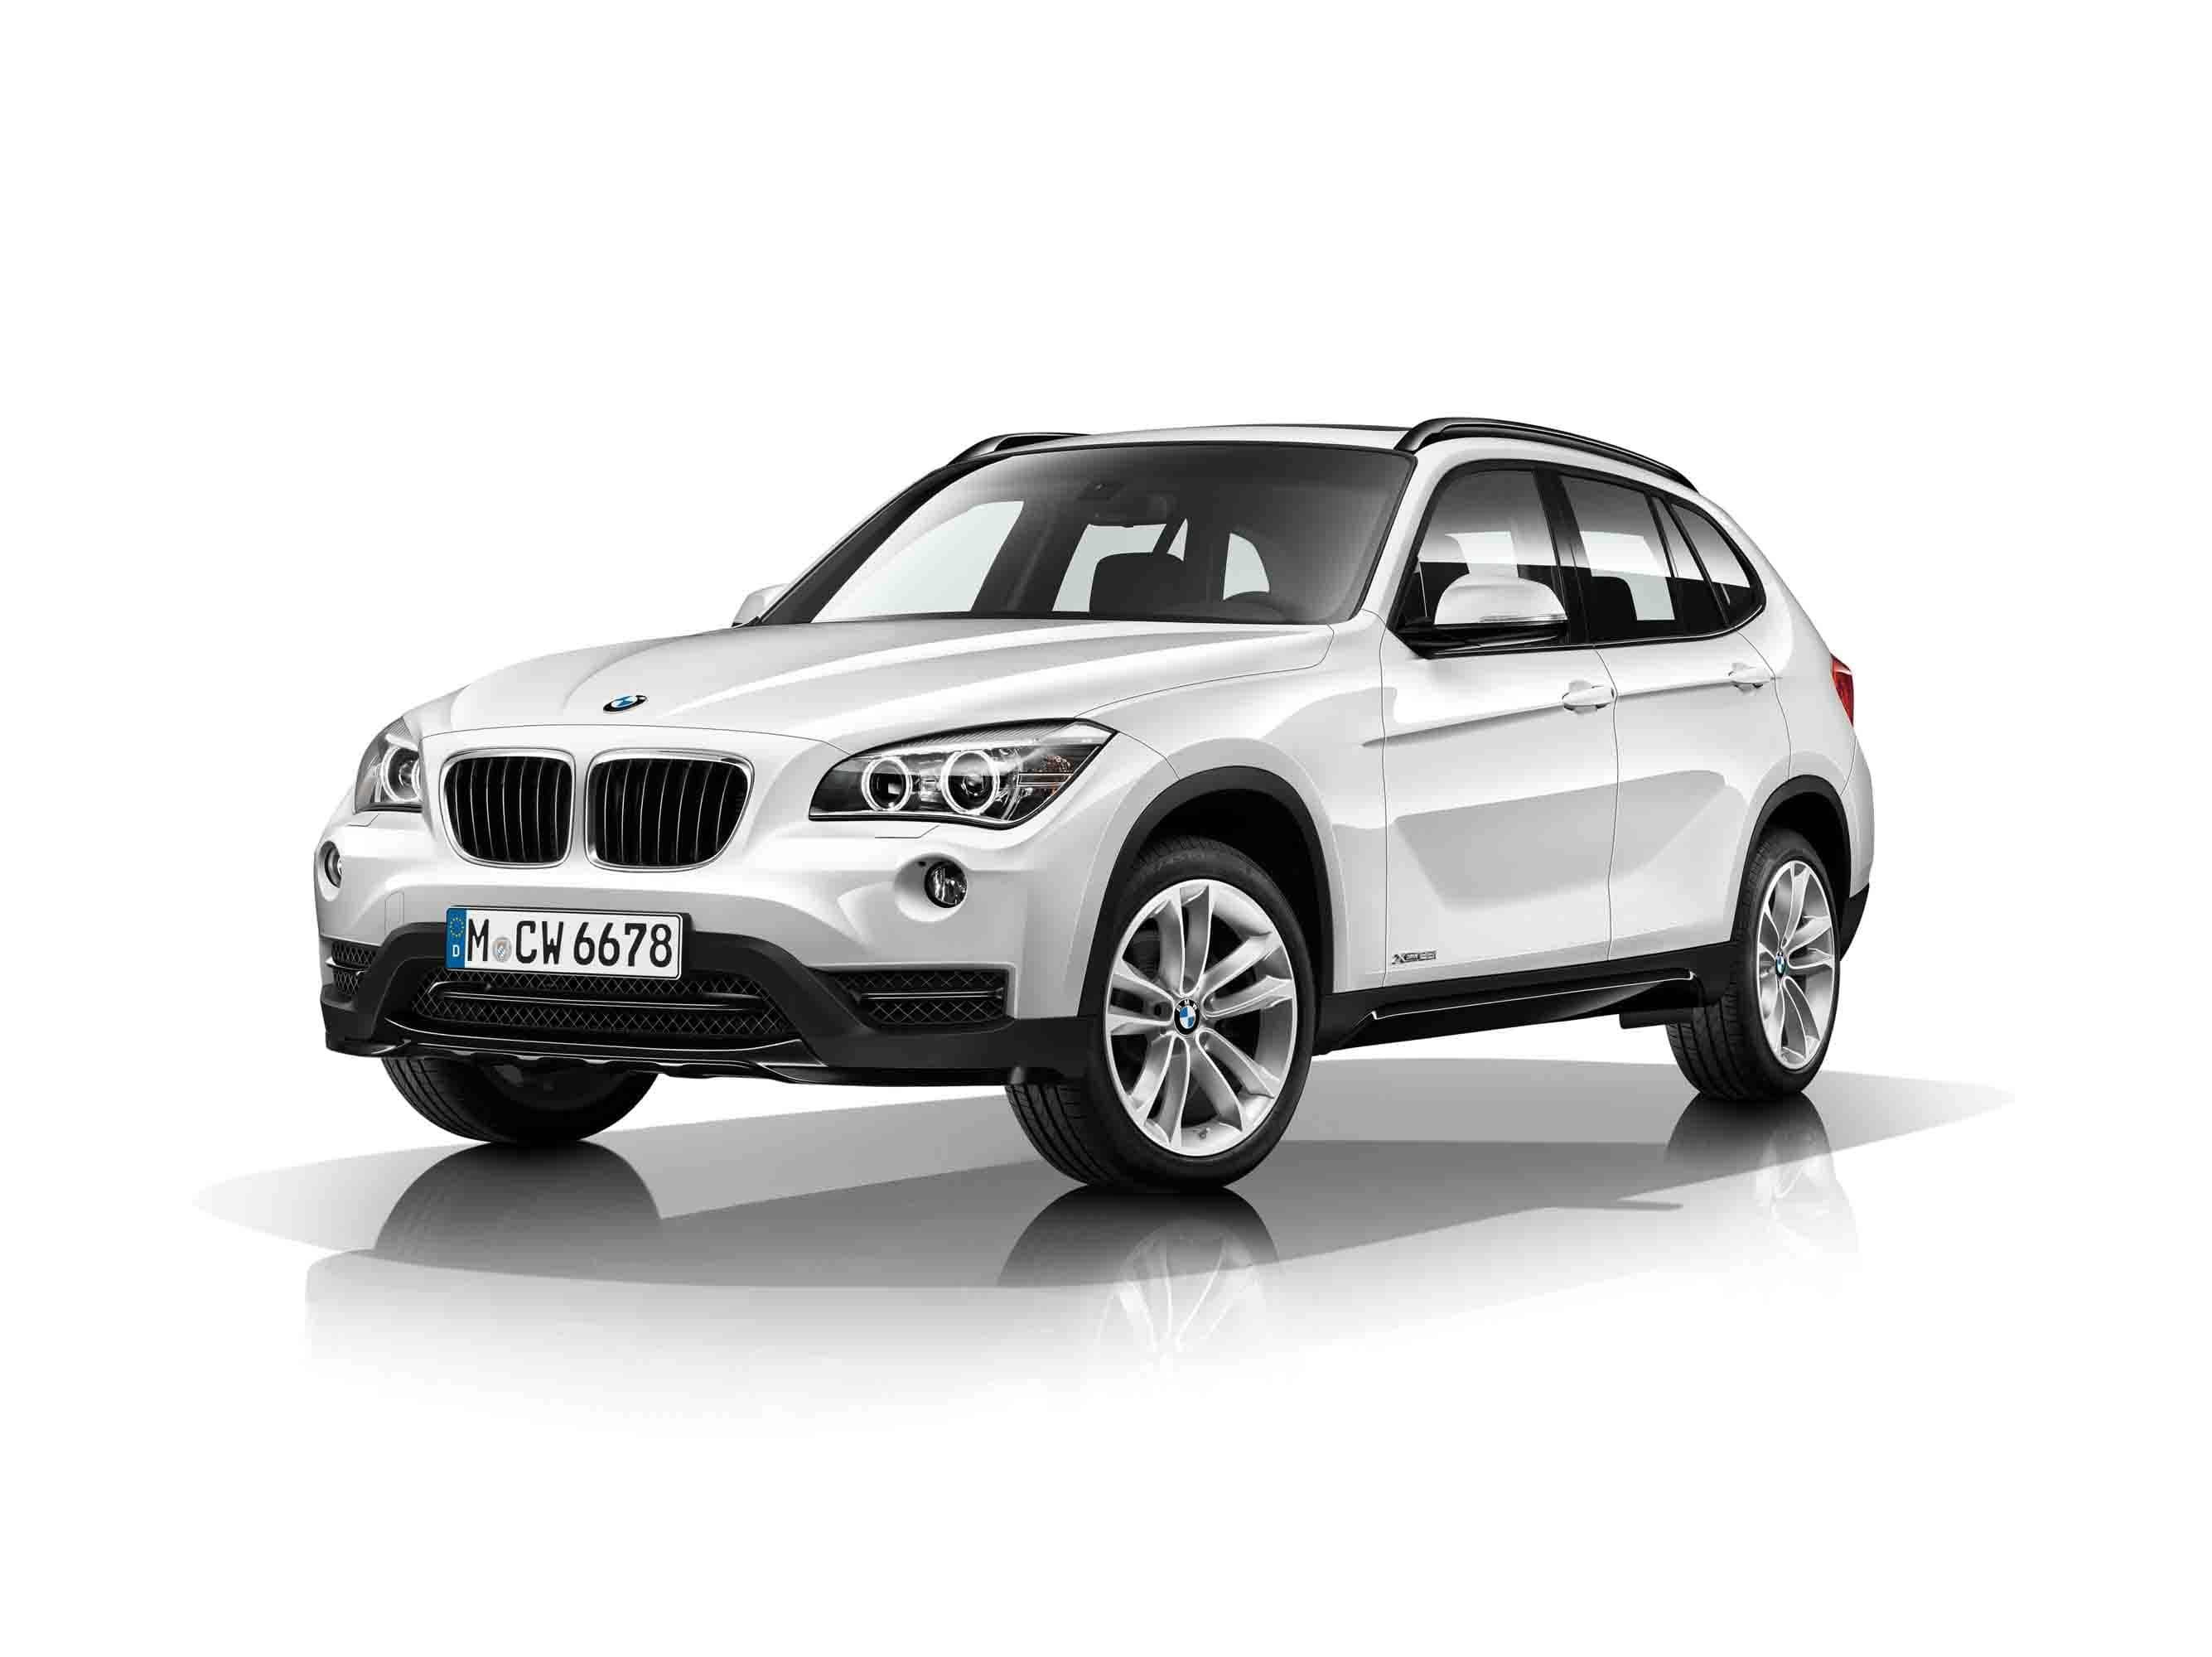 Latest Bmw X1 India Price Review Images Bmw Cars Free Download